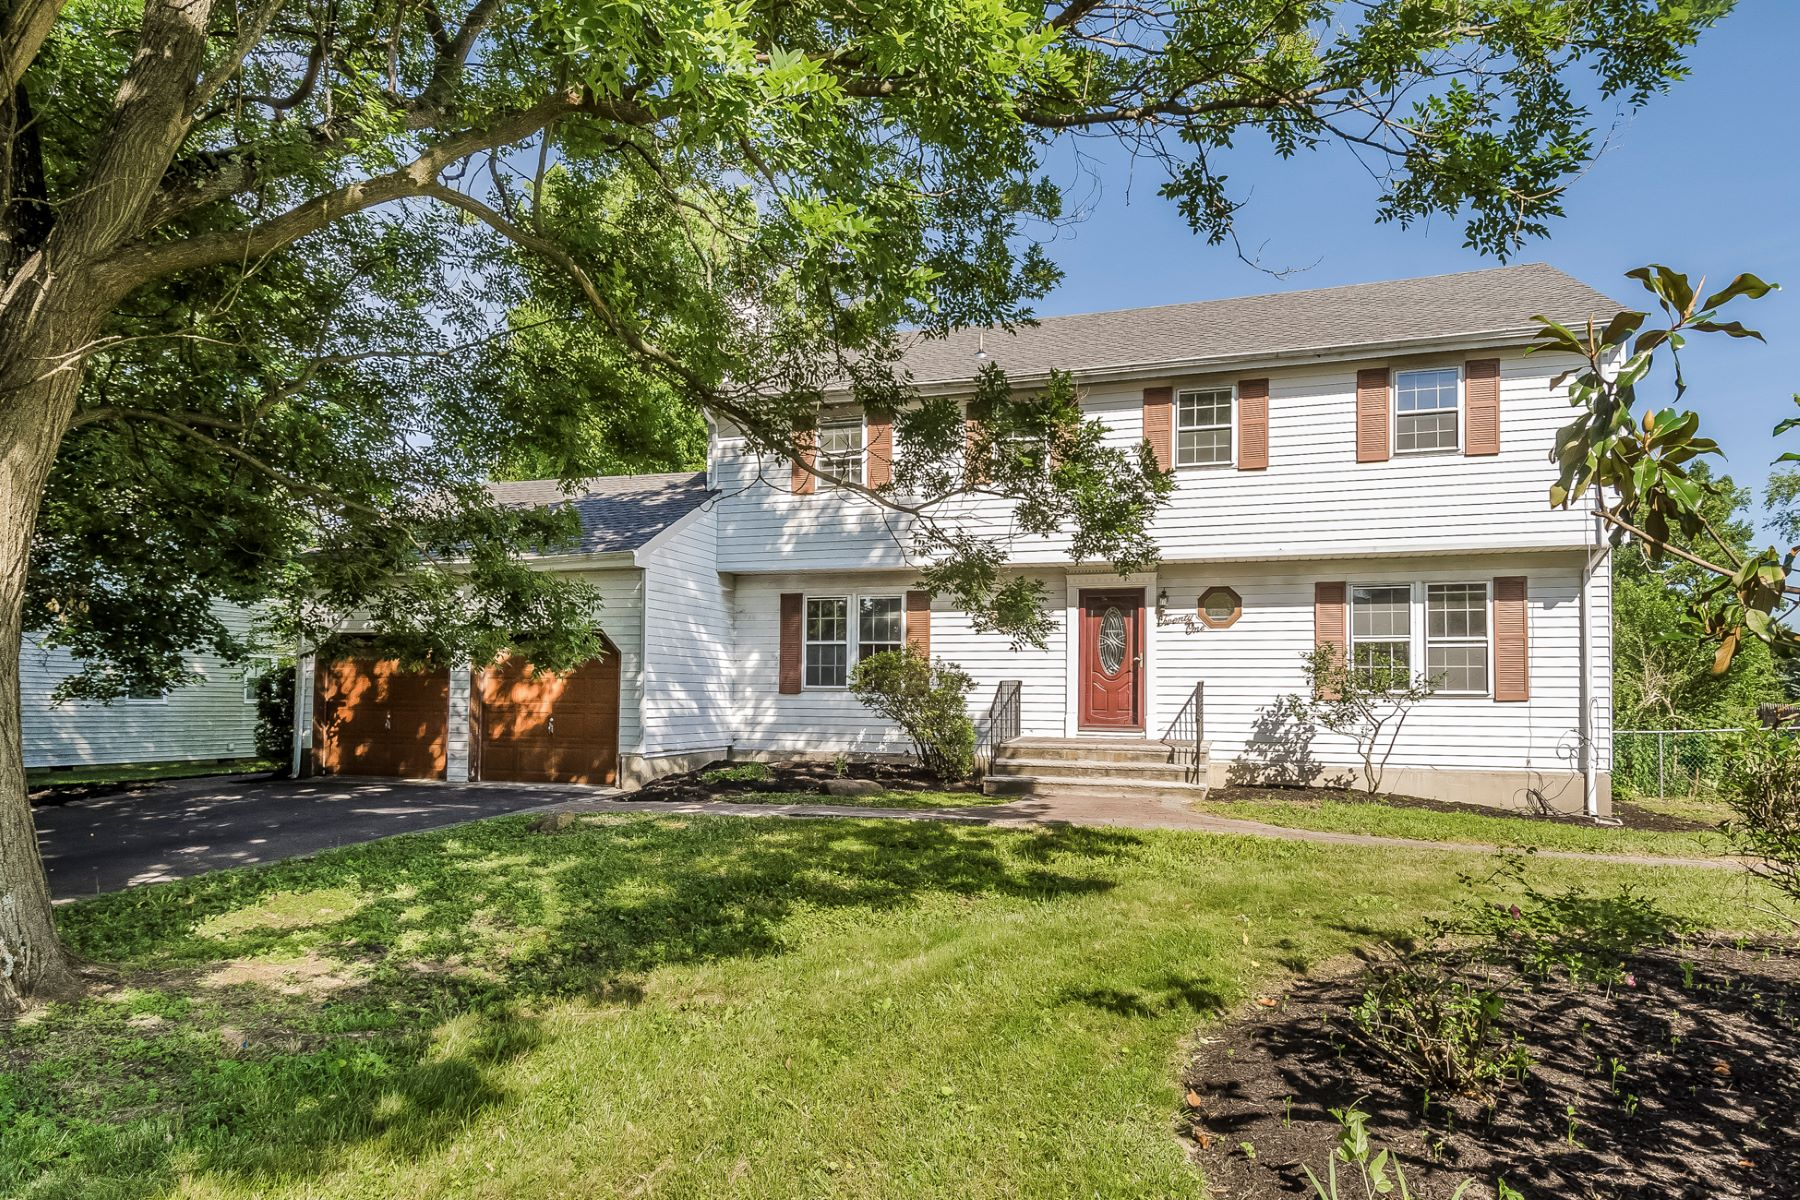 Maison unifamiliale pour l Vente à Full of Potential 21 Heathwood Drive, Hightstown, New Jersey 08520 États-UnisDans/Autour: East Windsor Township